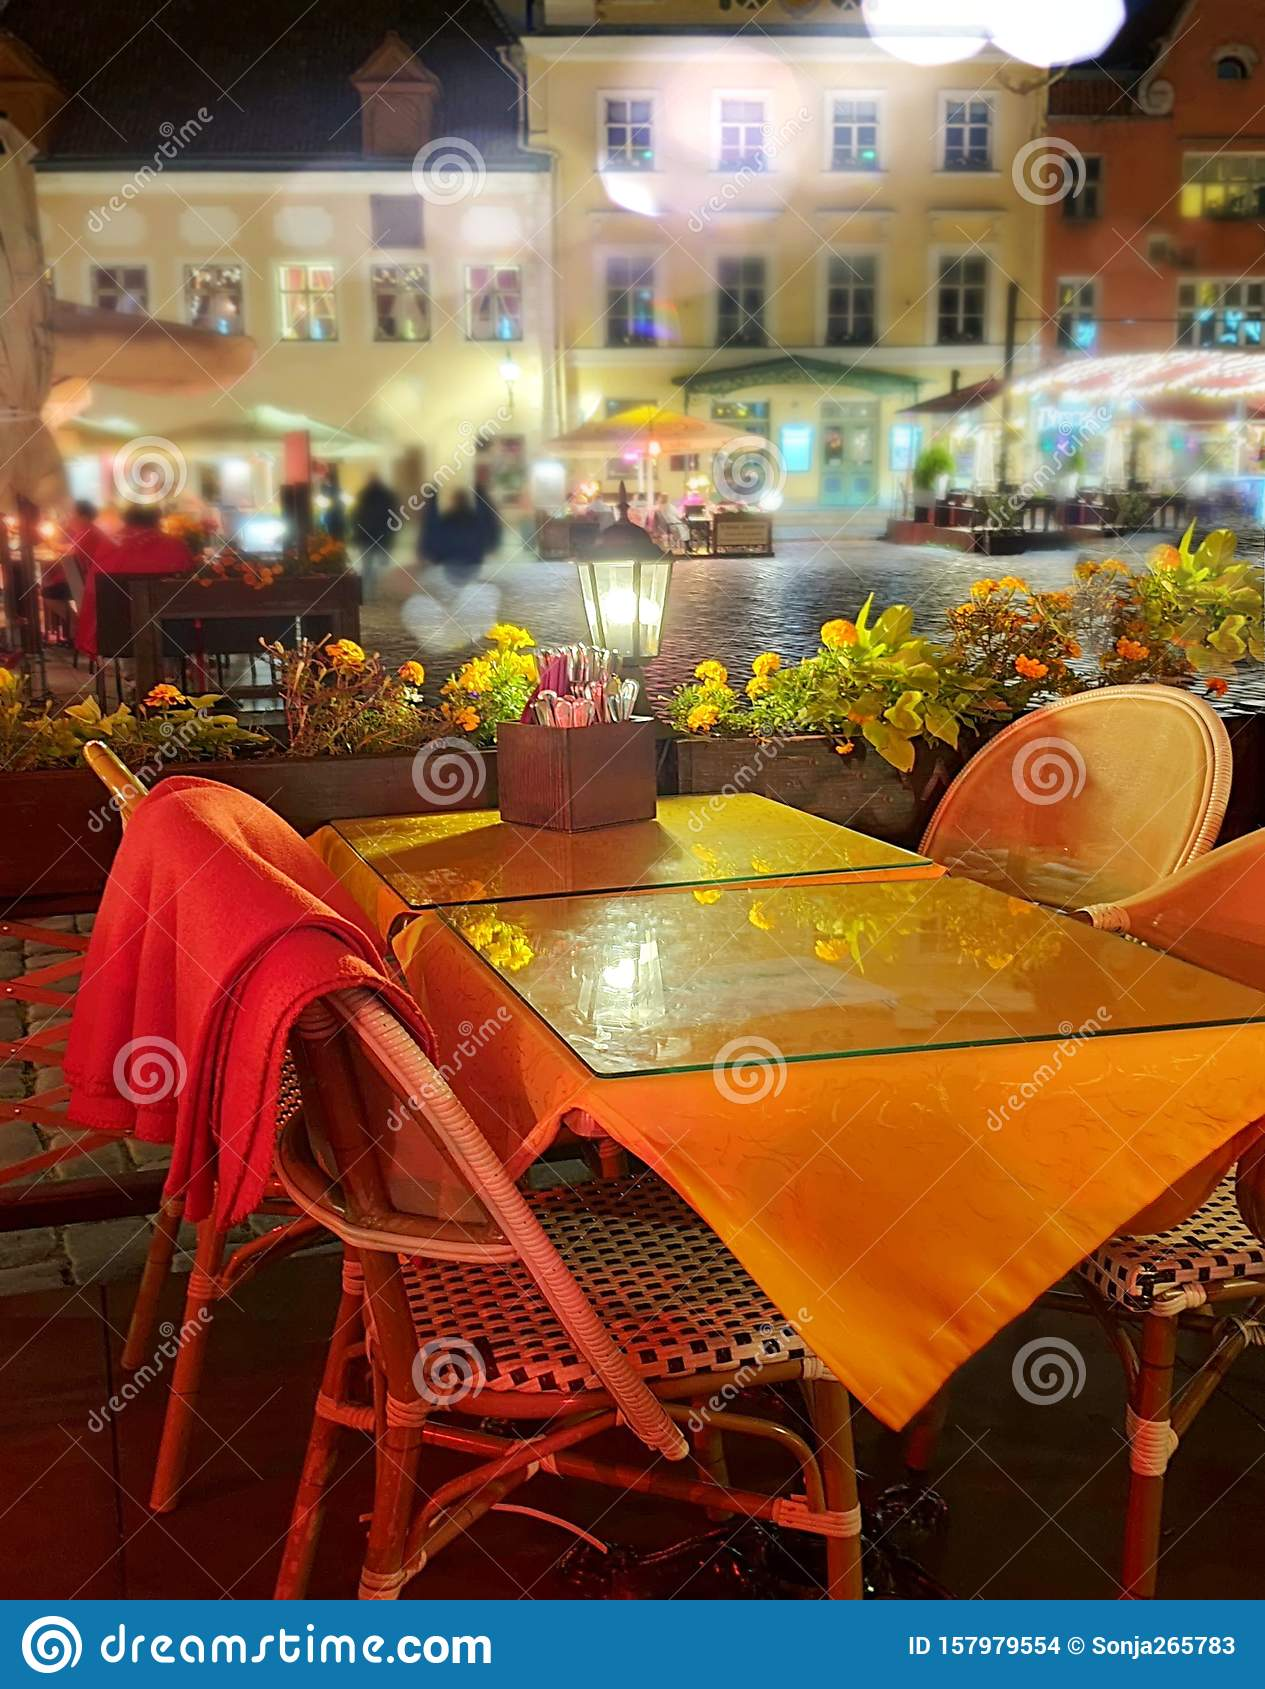 City Night Life Street Cafe Tables People Dinner Pink Light On Table Lifestyle Travel Restaurant City Light Old Town Tallinn Stock Photo Image Of People Colorful 157979554